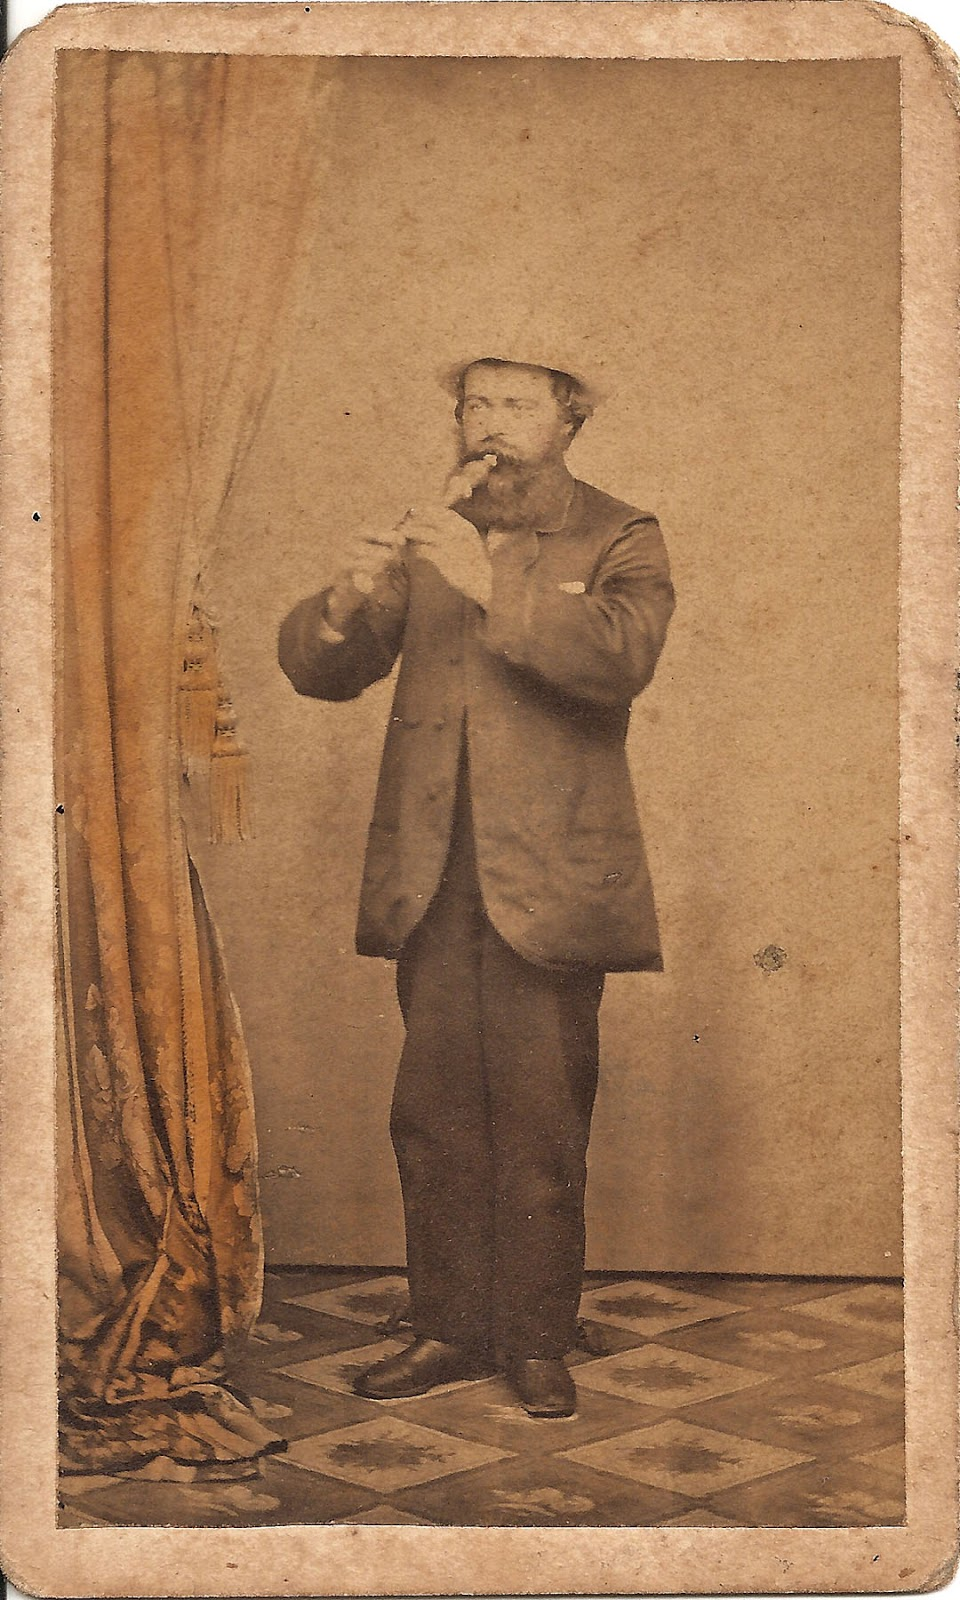 Some Have Hidden Meanings And Clever Twists That Convert A Picture Into Poetry This Modest Carte De Visite Photo Is One Of Them